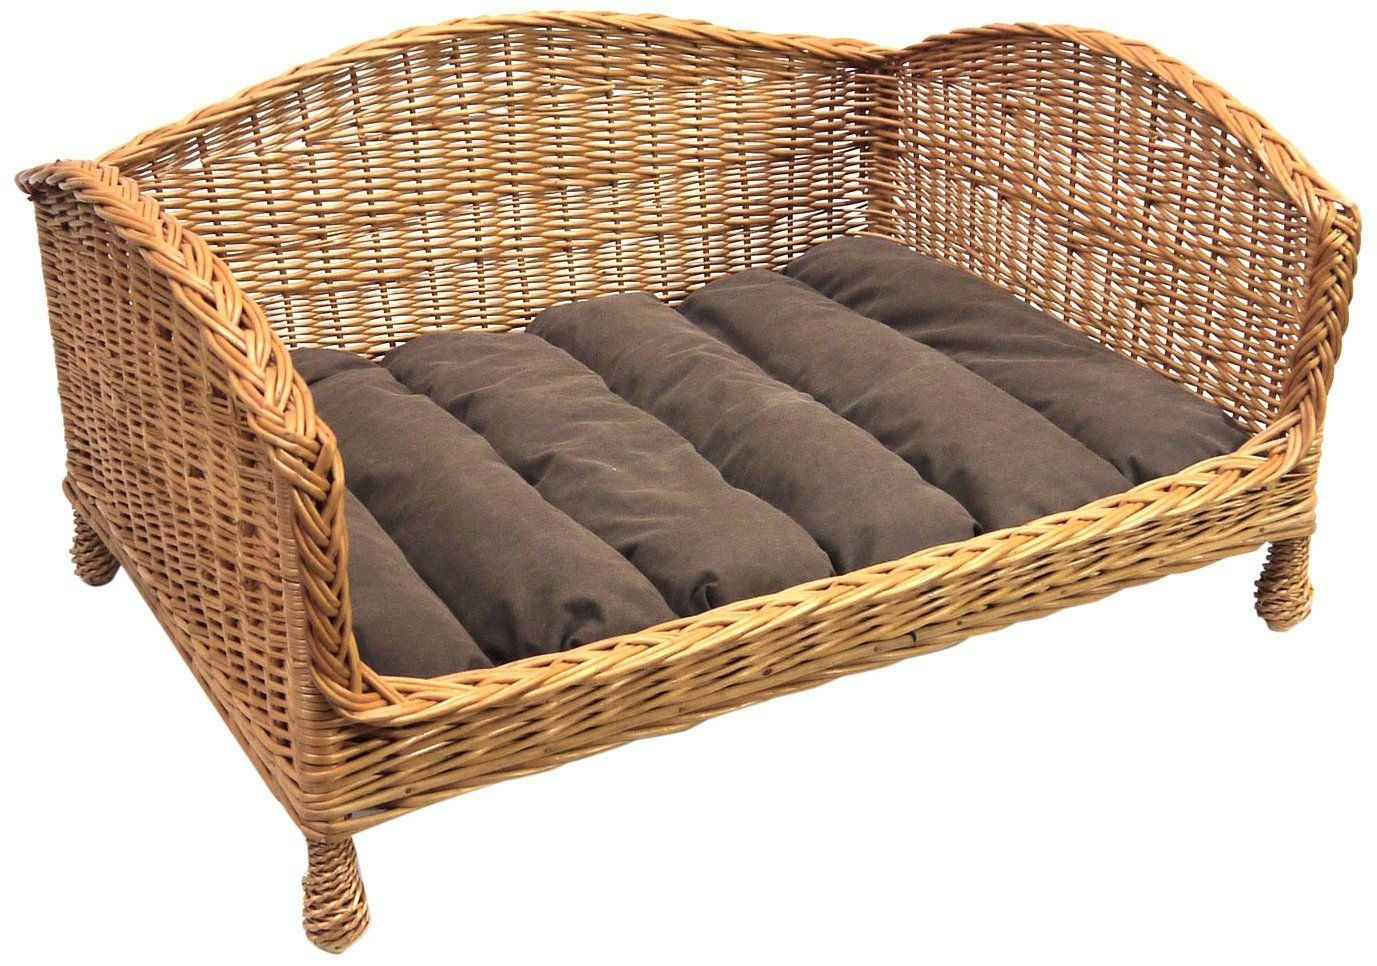 Dog beds that look like couches - Top 25 Ideas About Dog Beds That Look Like Furniture On